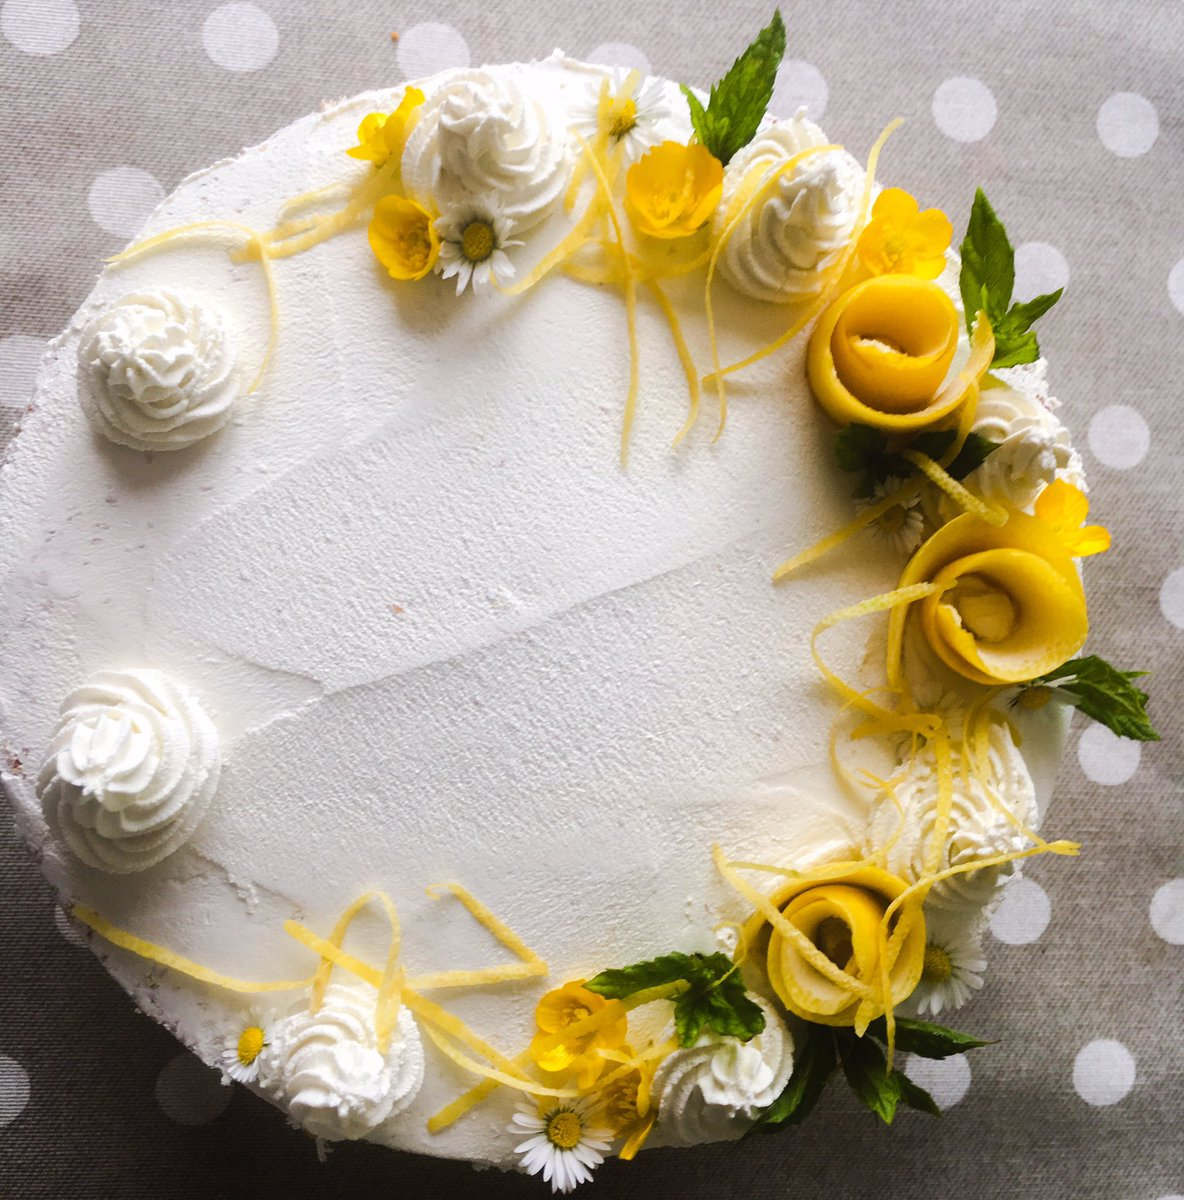 Love decorating cakes like this. Simple roses made of lemon peel for a lemon drizzle cake 🍋 #whitfieldcakes #instacakes